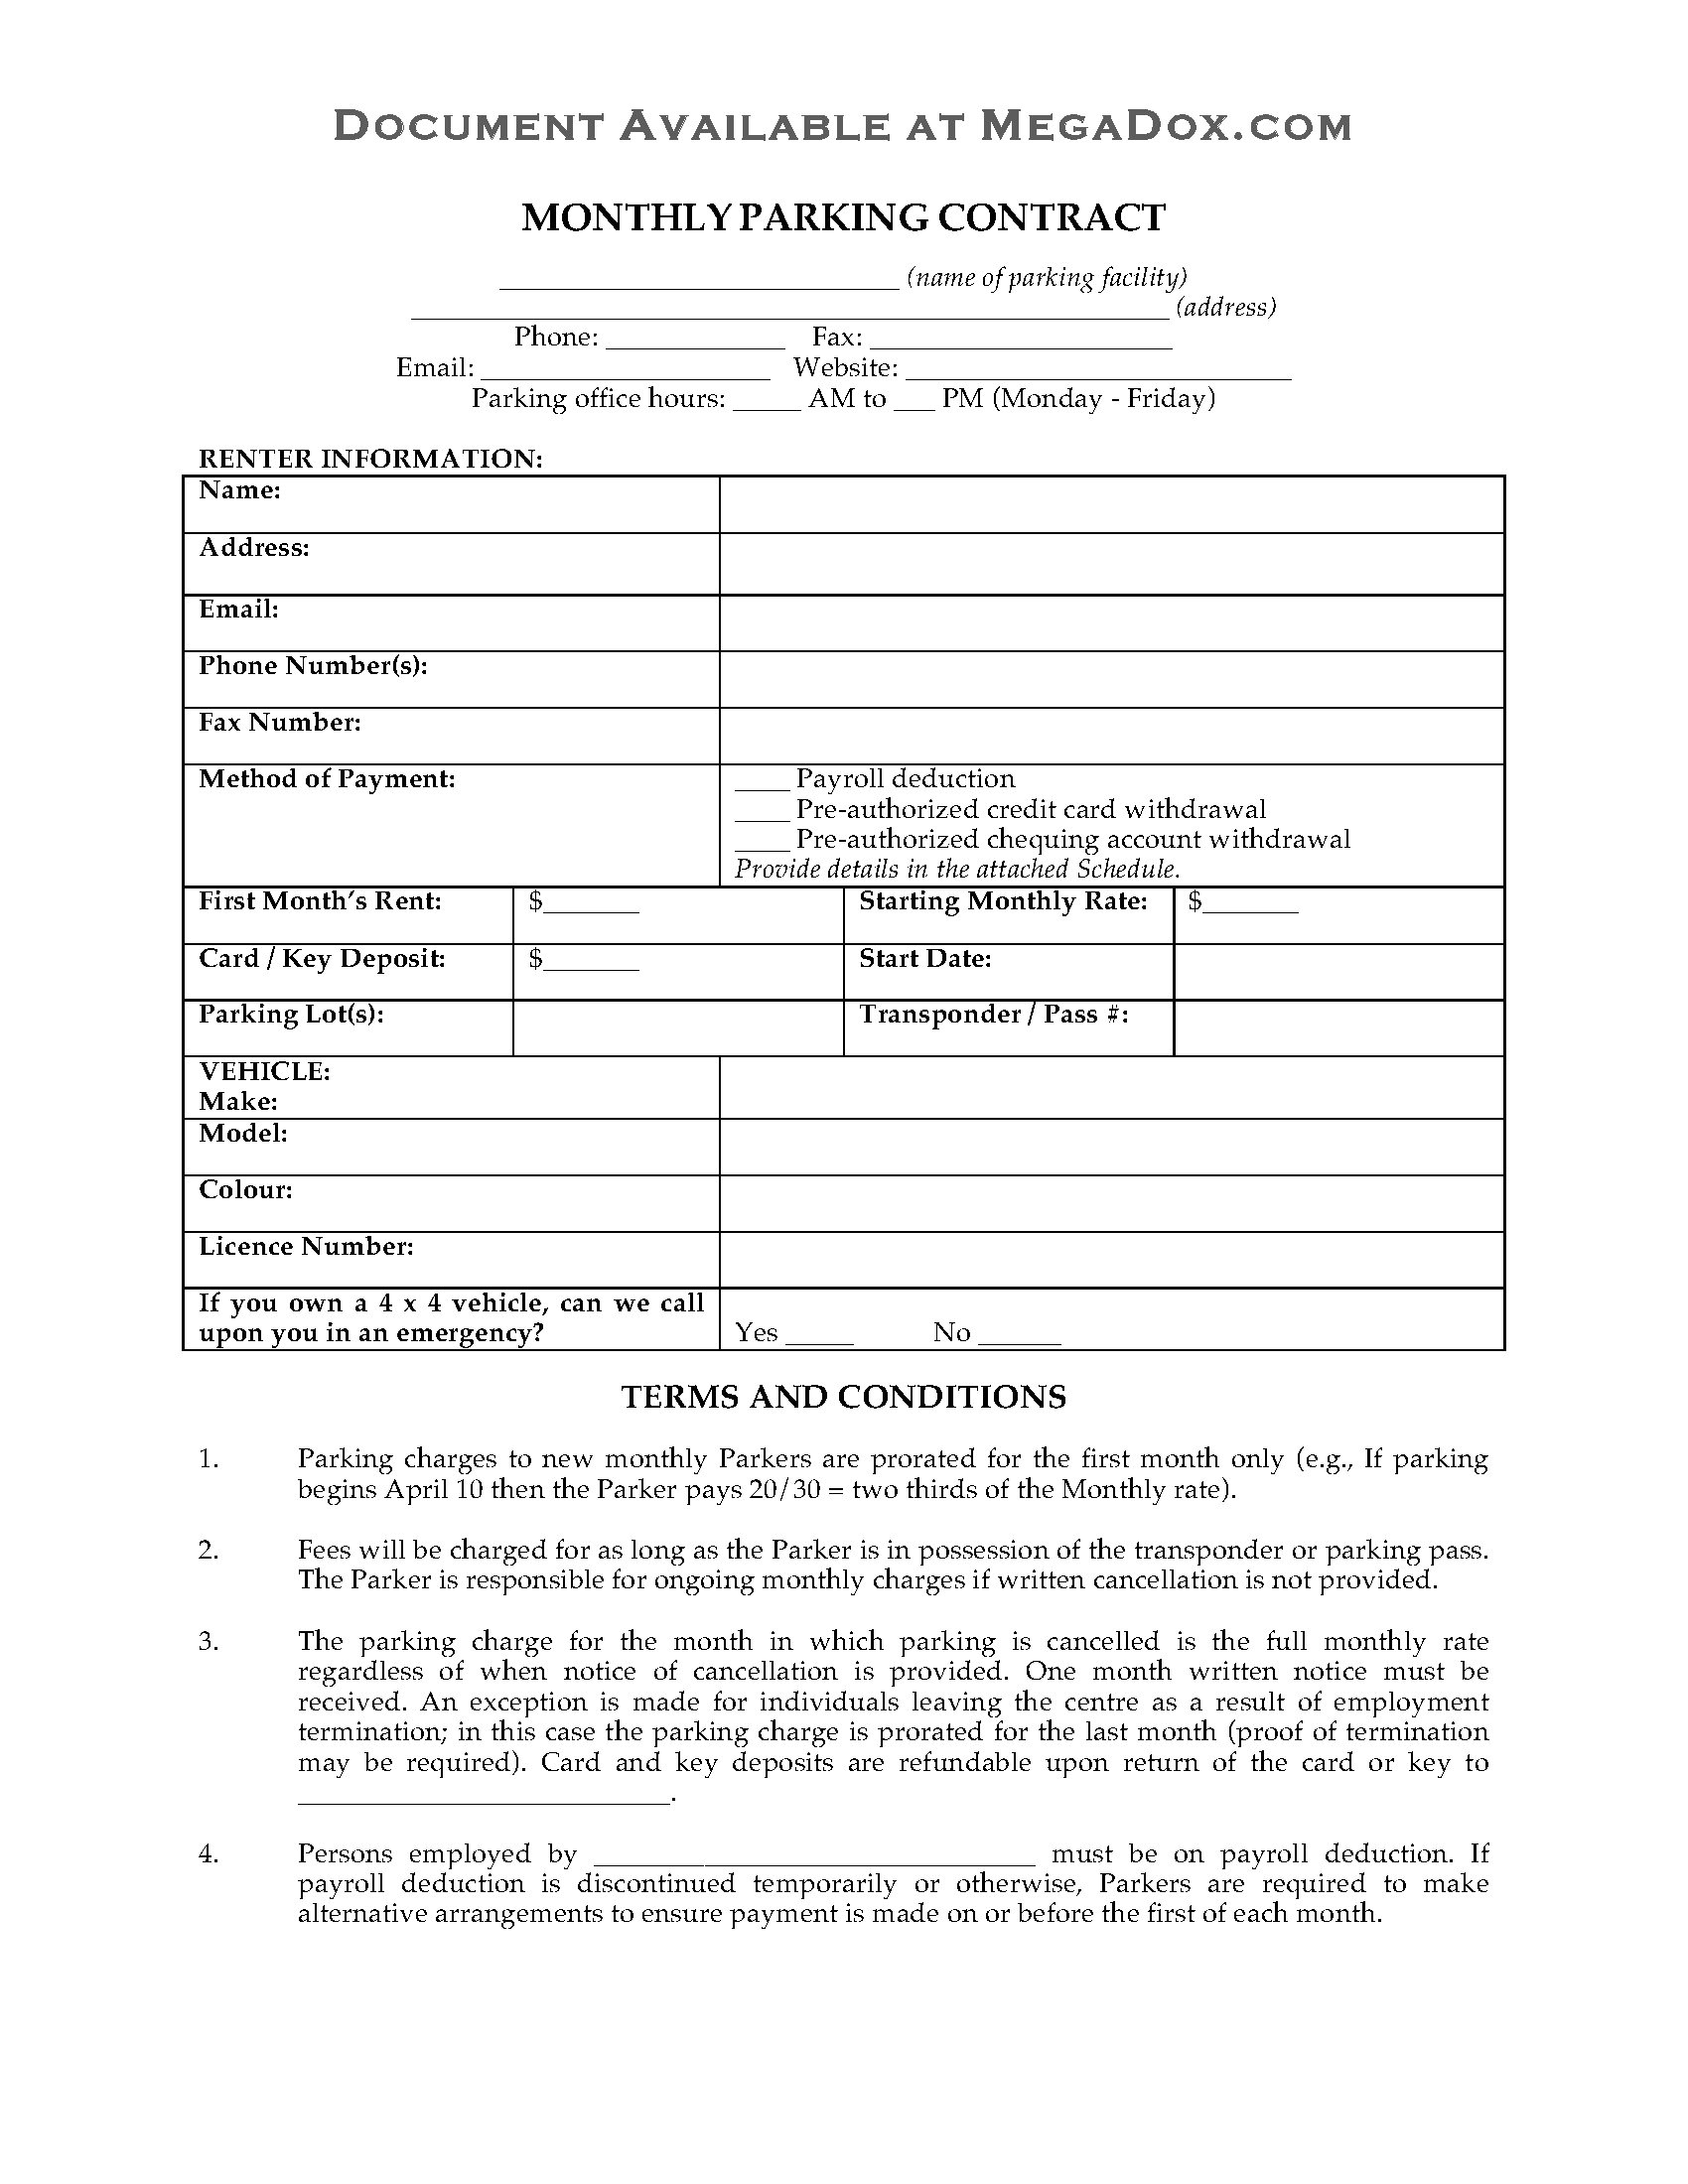 canada monthly employee parking contract